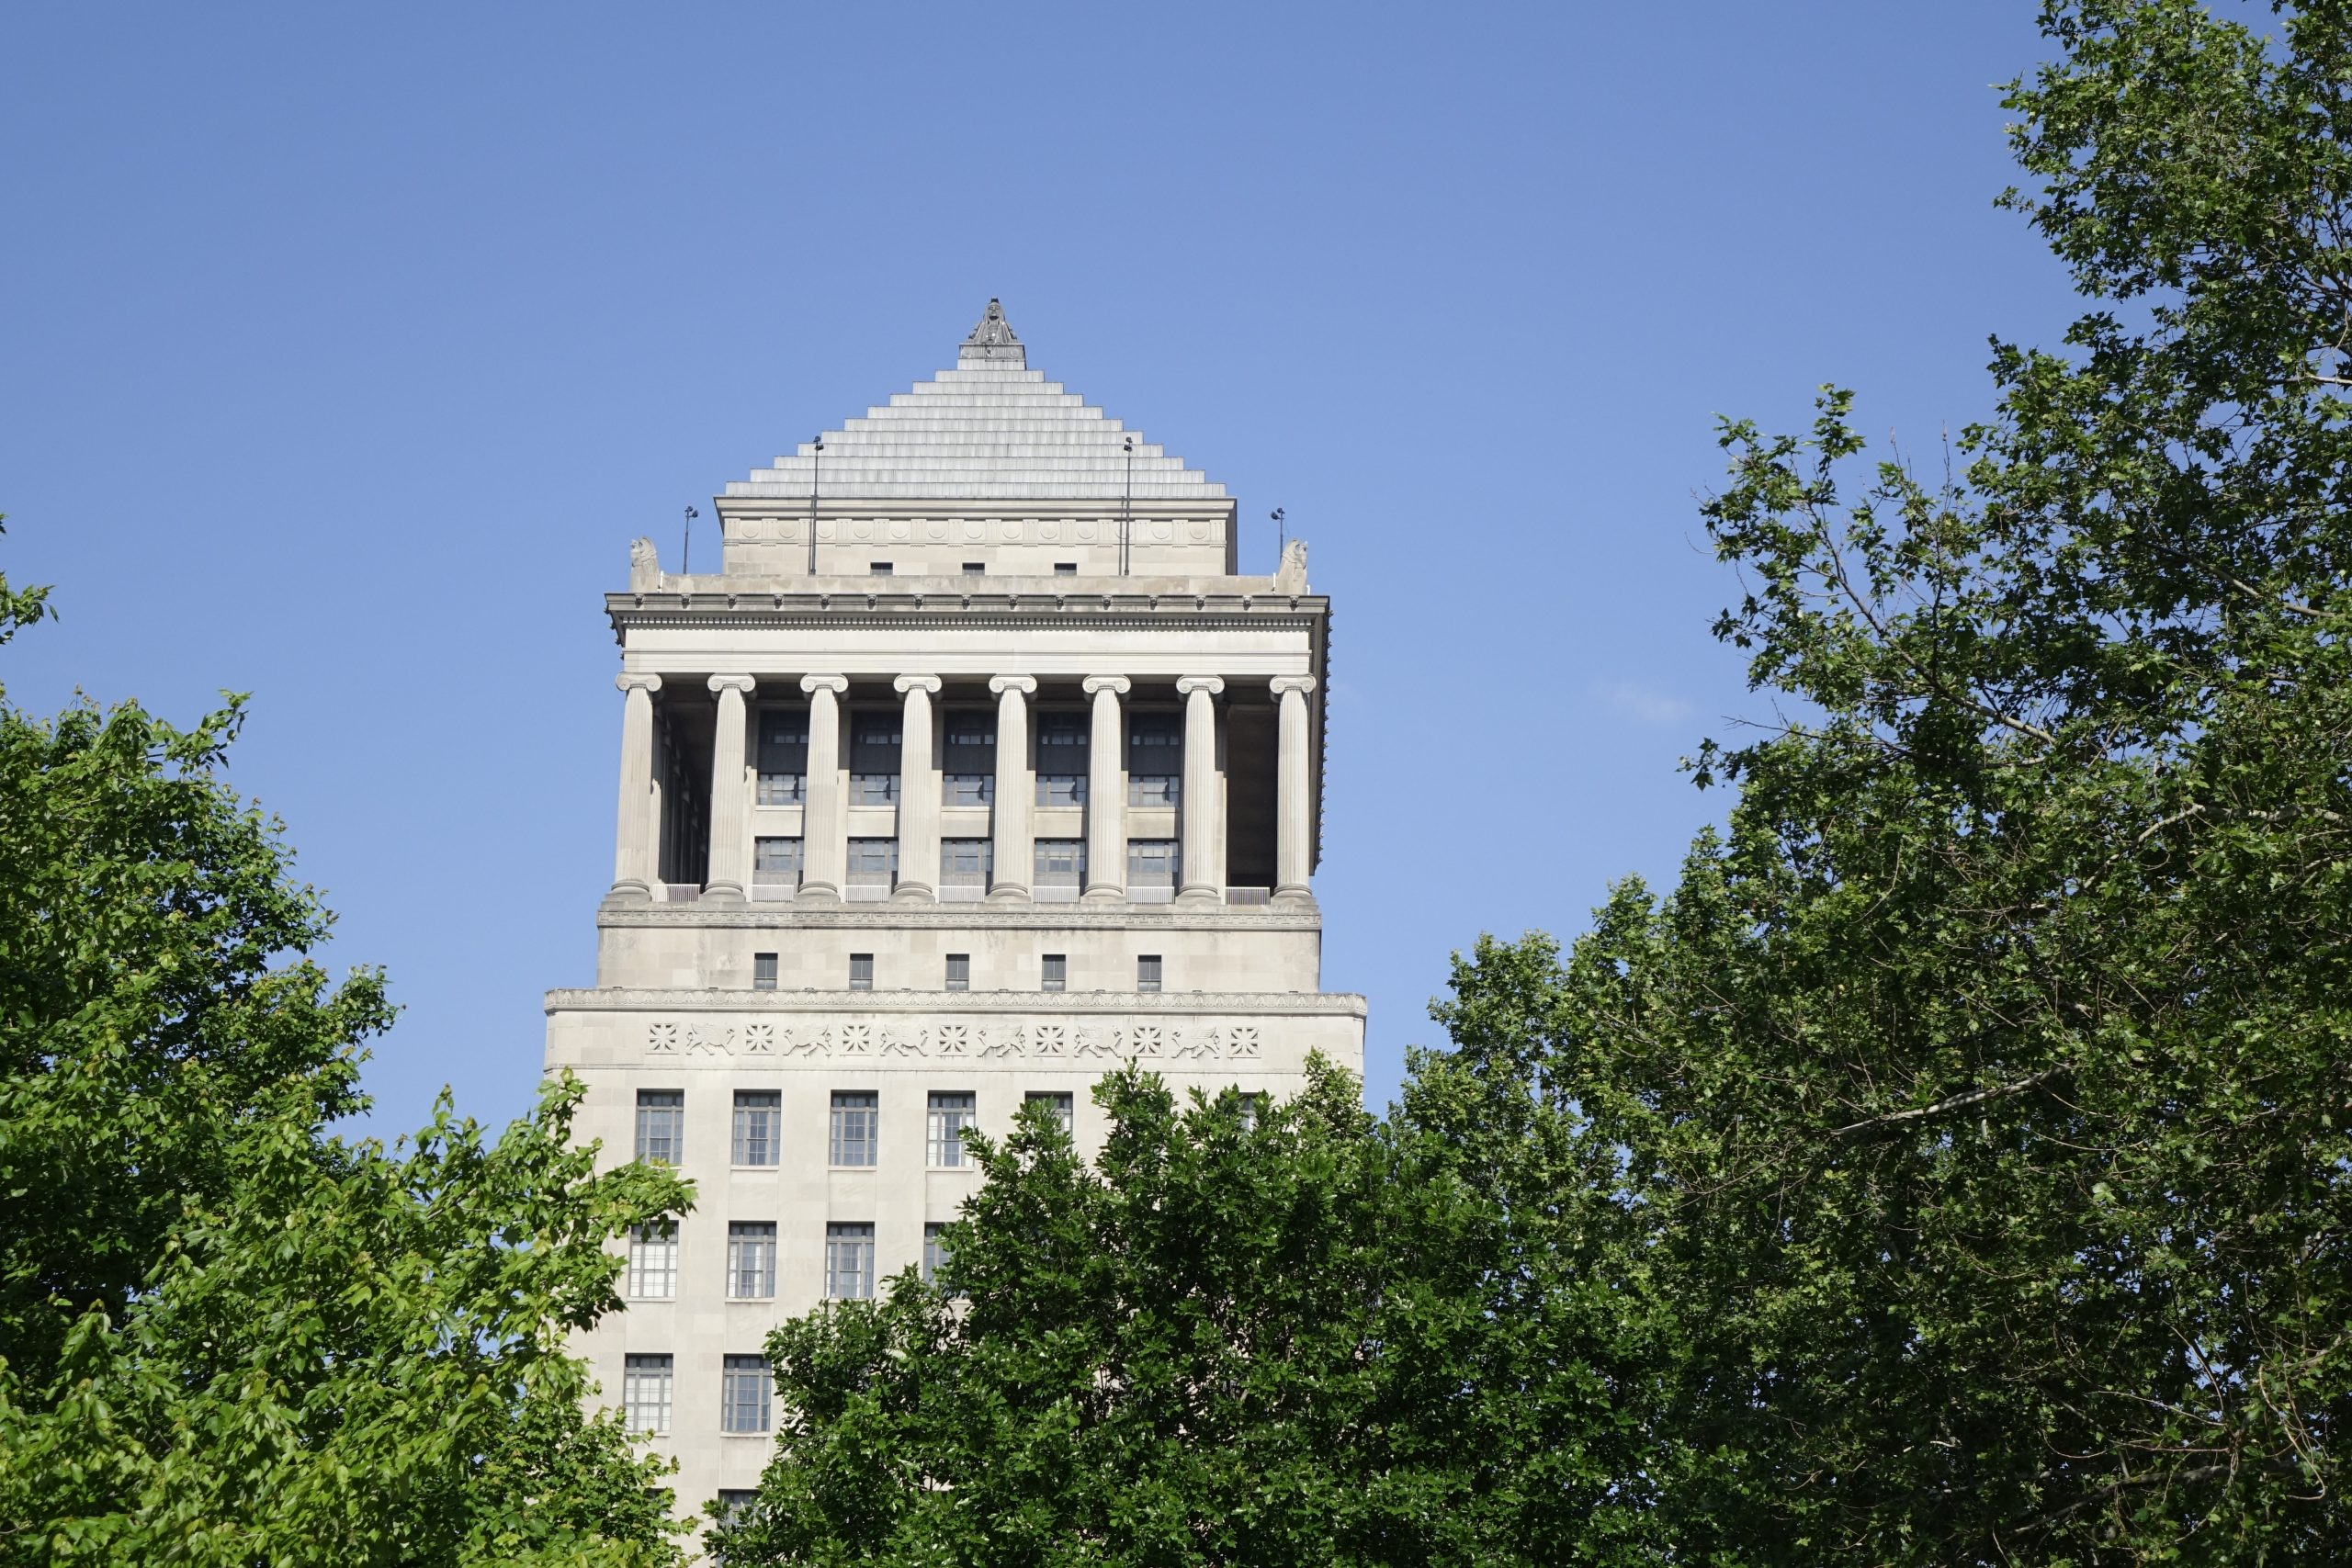 A Little-known Fact About the Top of the St. Louis Civil Court's Building